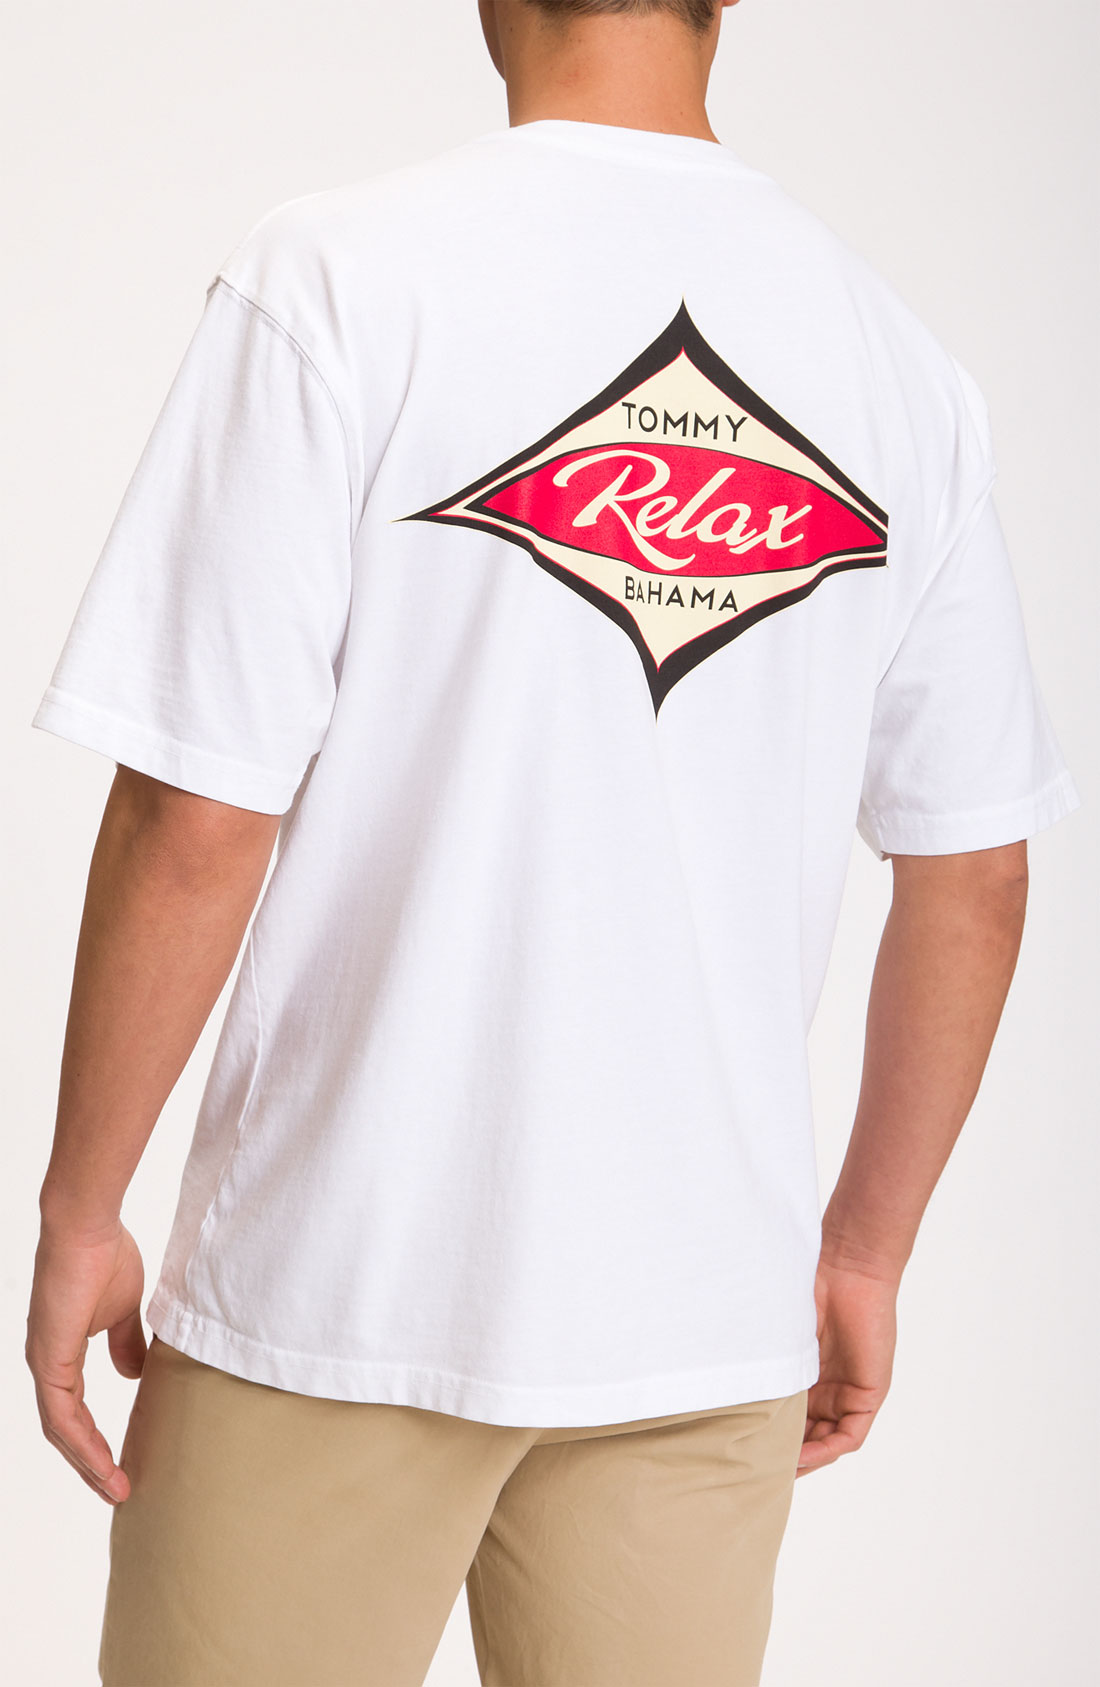 Tommy bahama relax surf tshirt in white for men lyst for Custom tommy bahama shirts